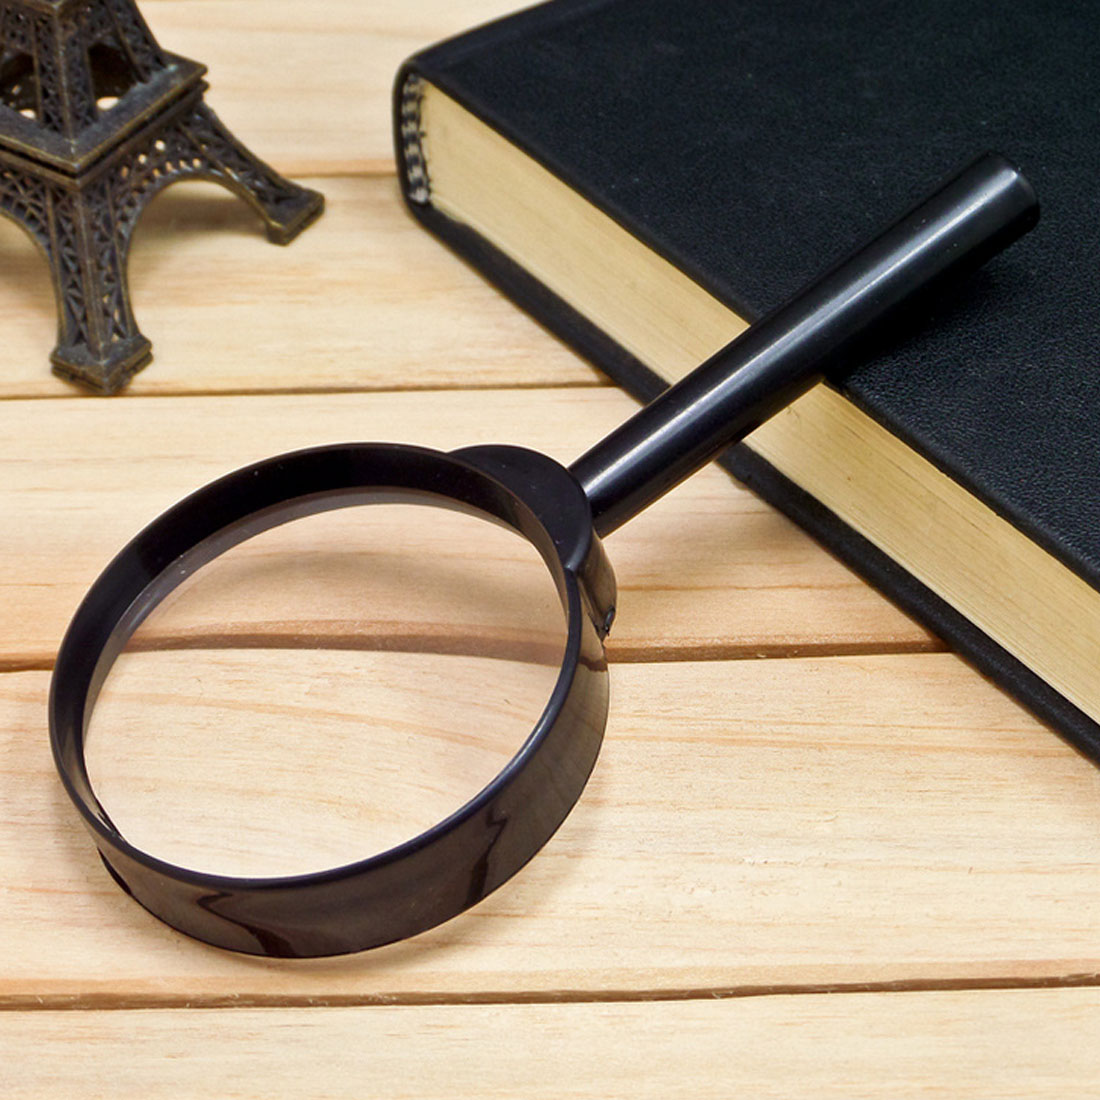 Handheld Reading 3X Magnifying Loupe Reading Glass Lens Hand Held 60mm Magnifier